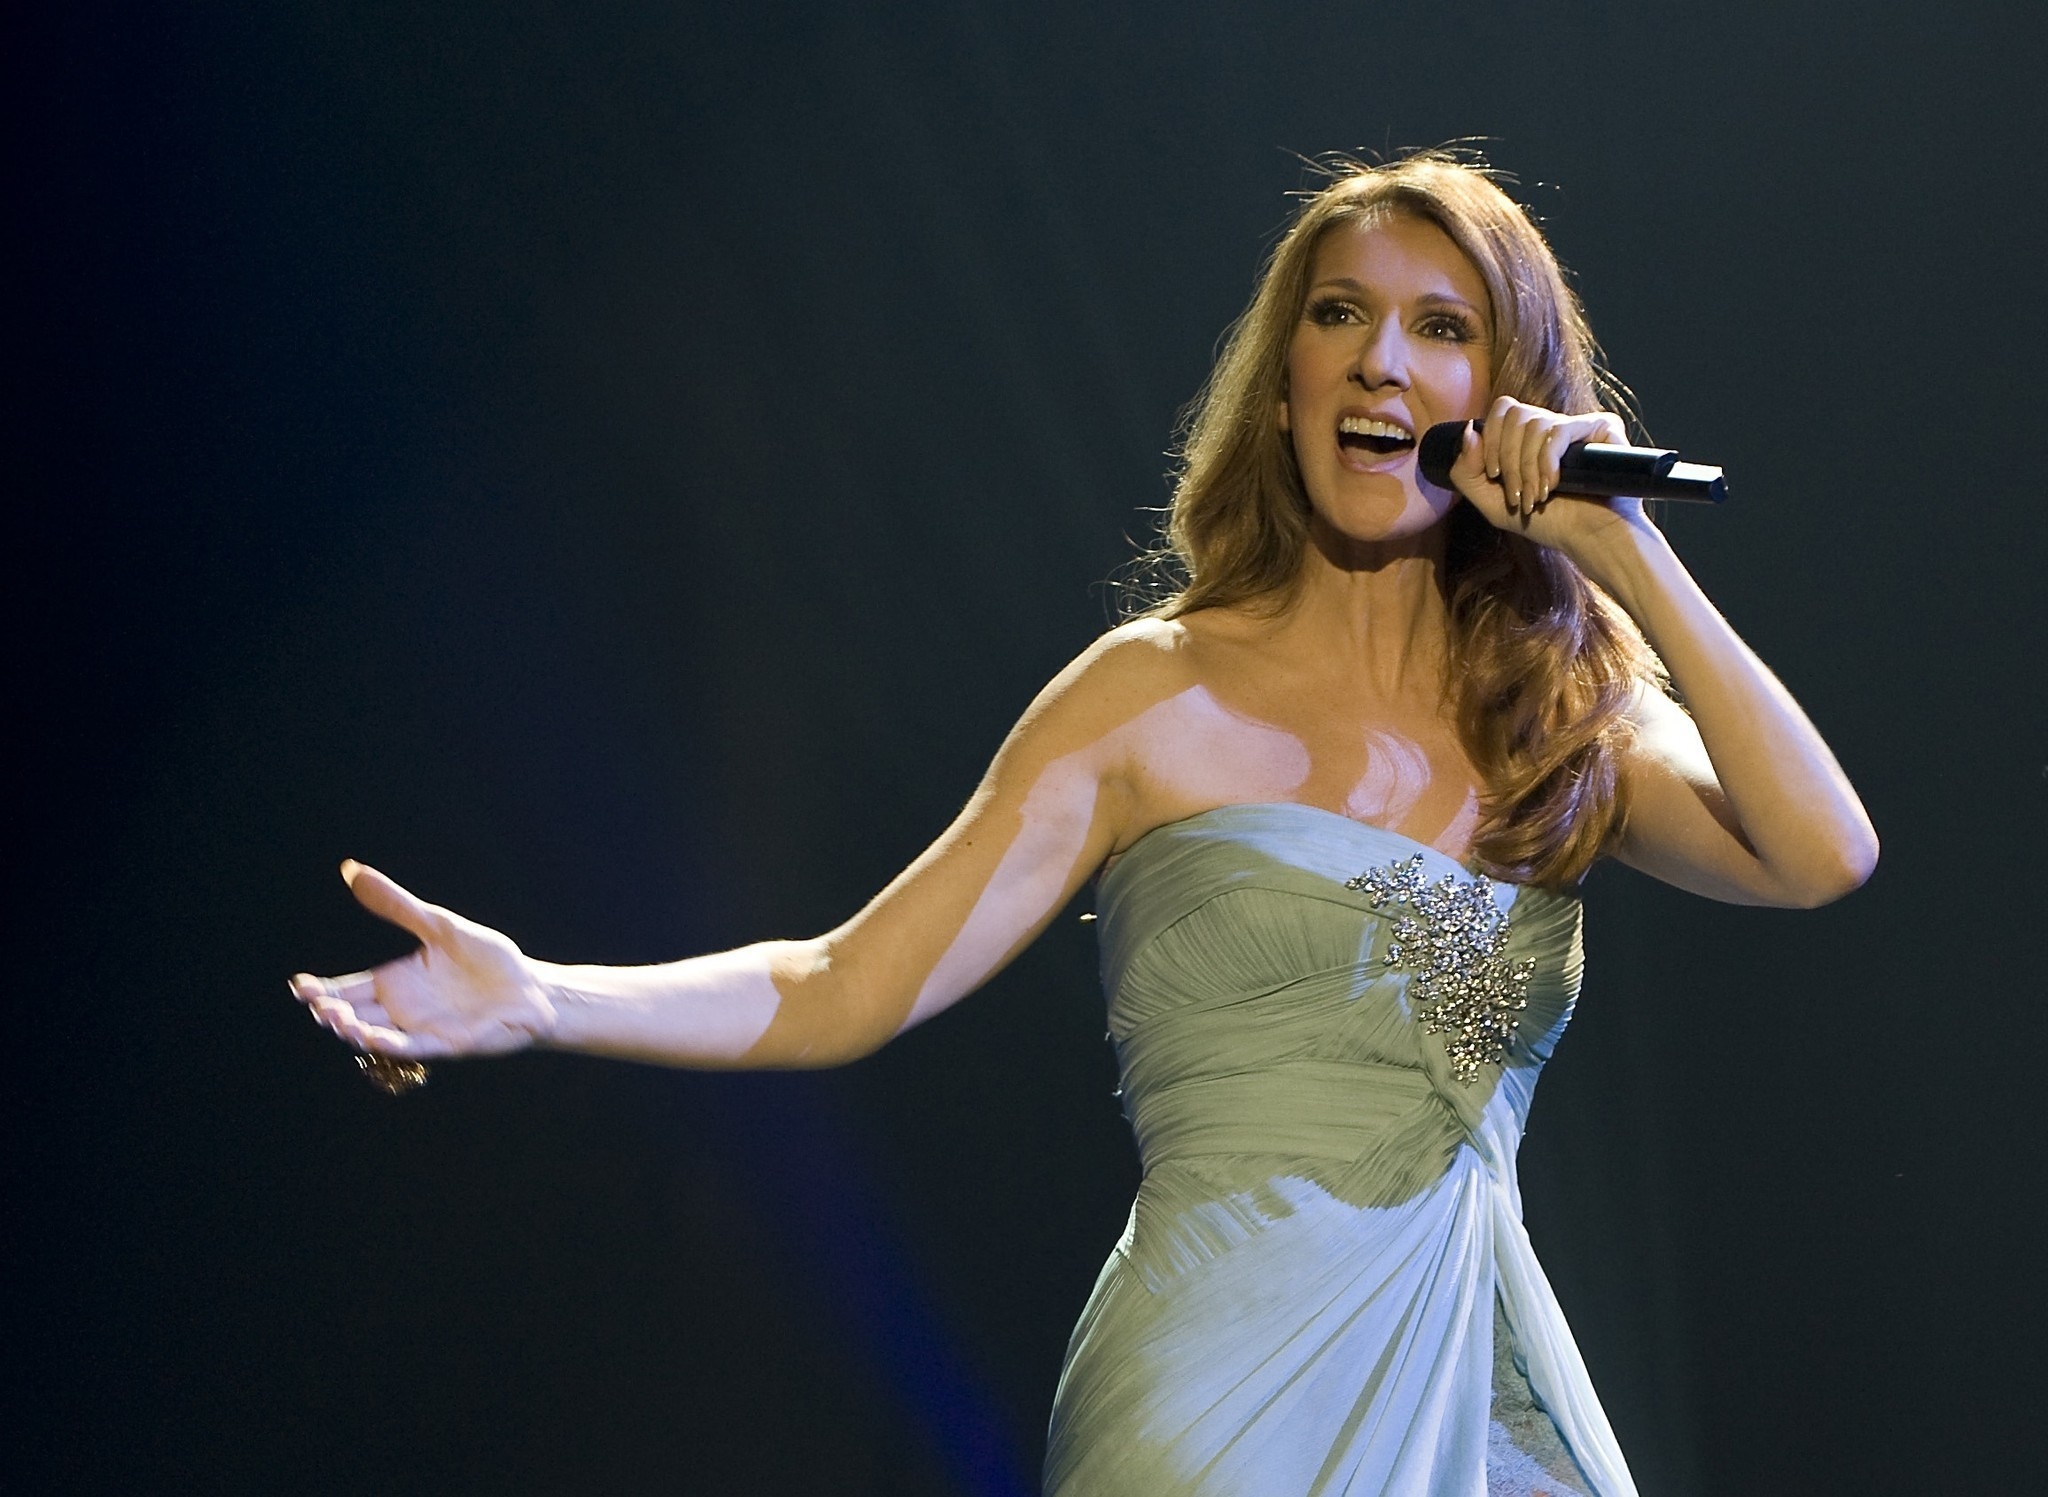 Charitybuzz Meet Celine Dion With Vip Tickets To Her Las